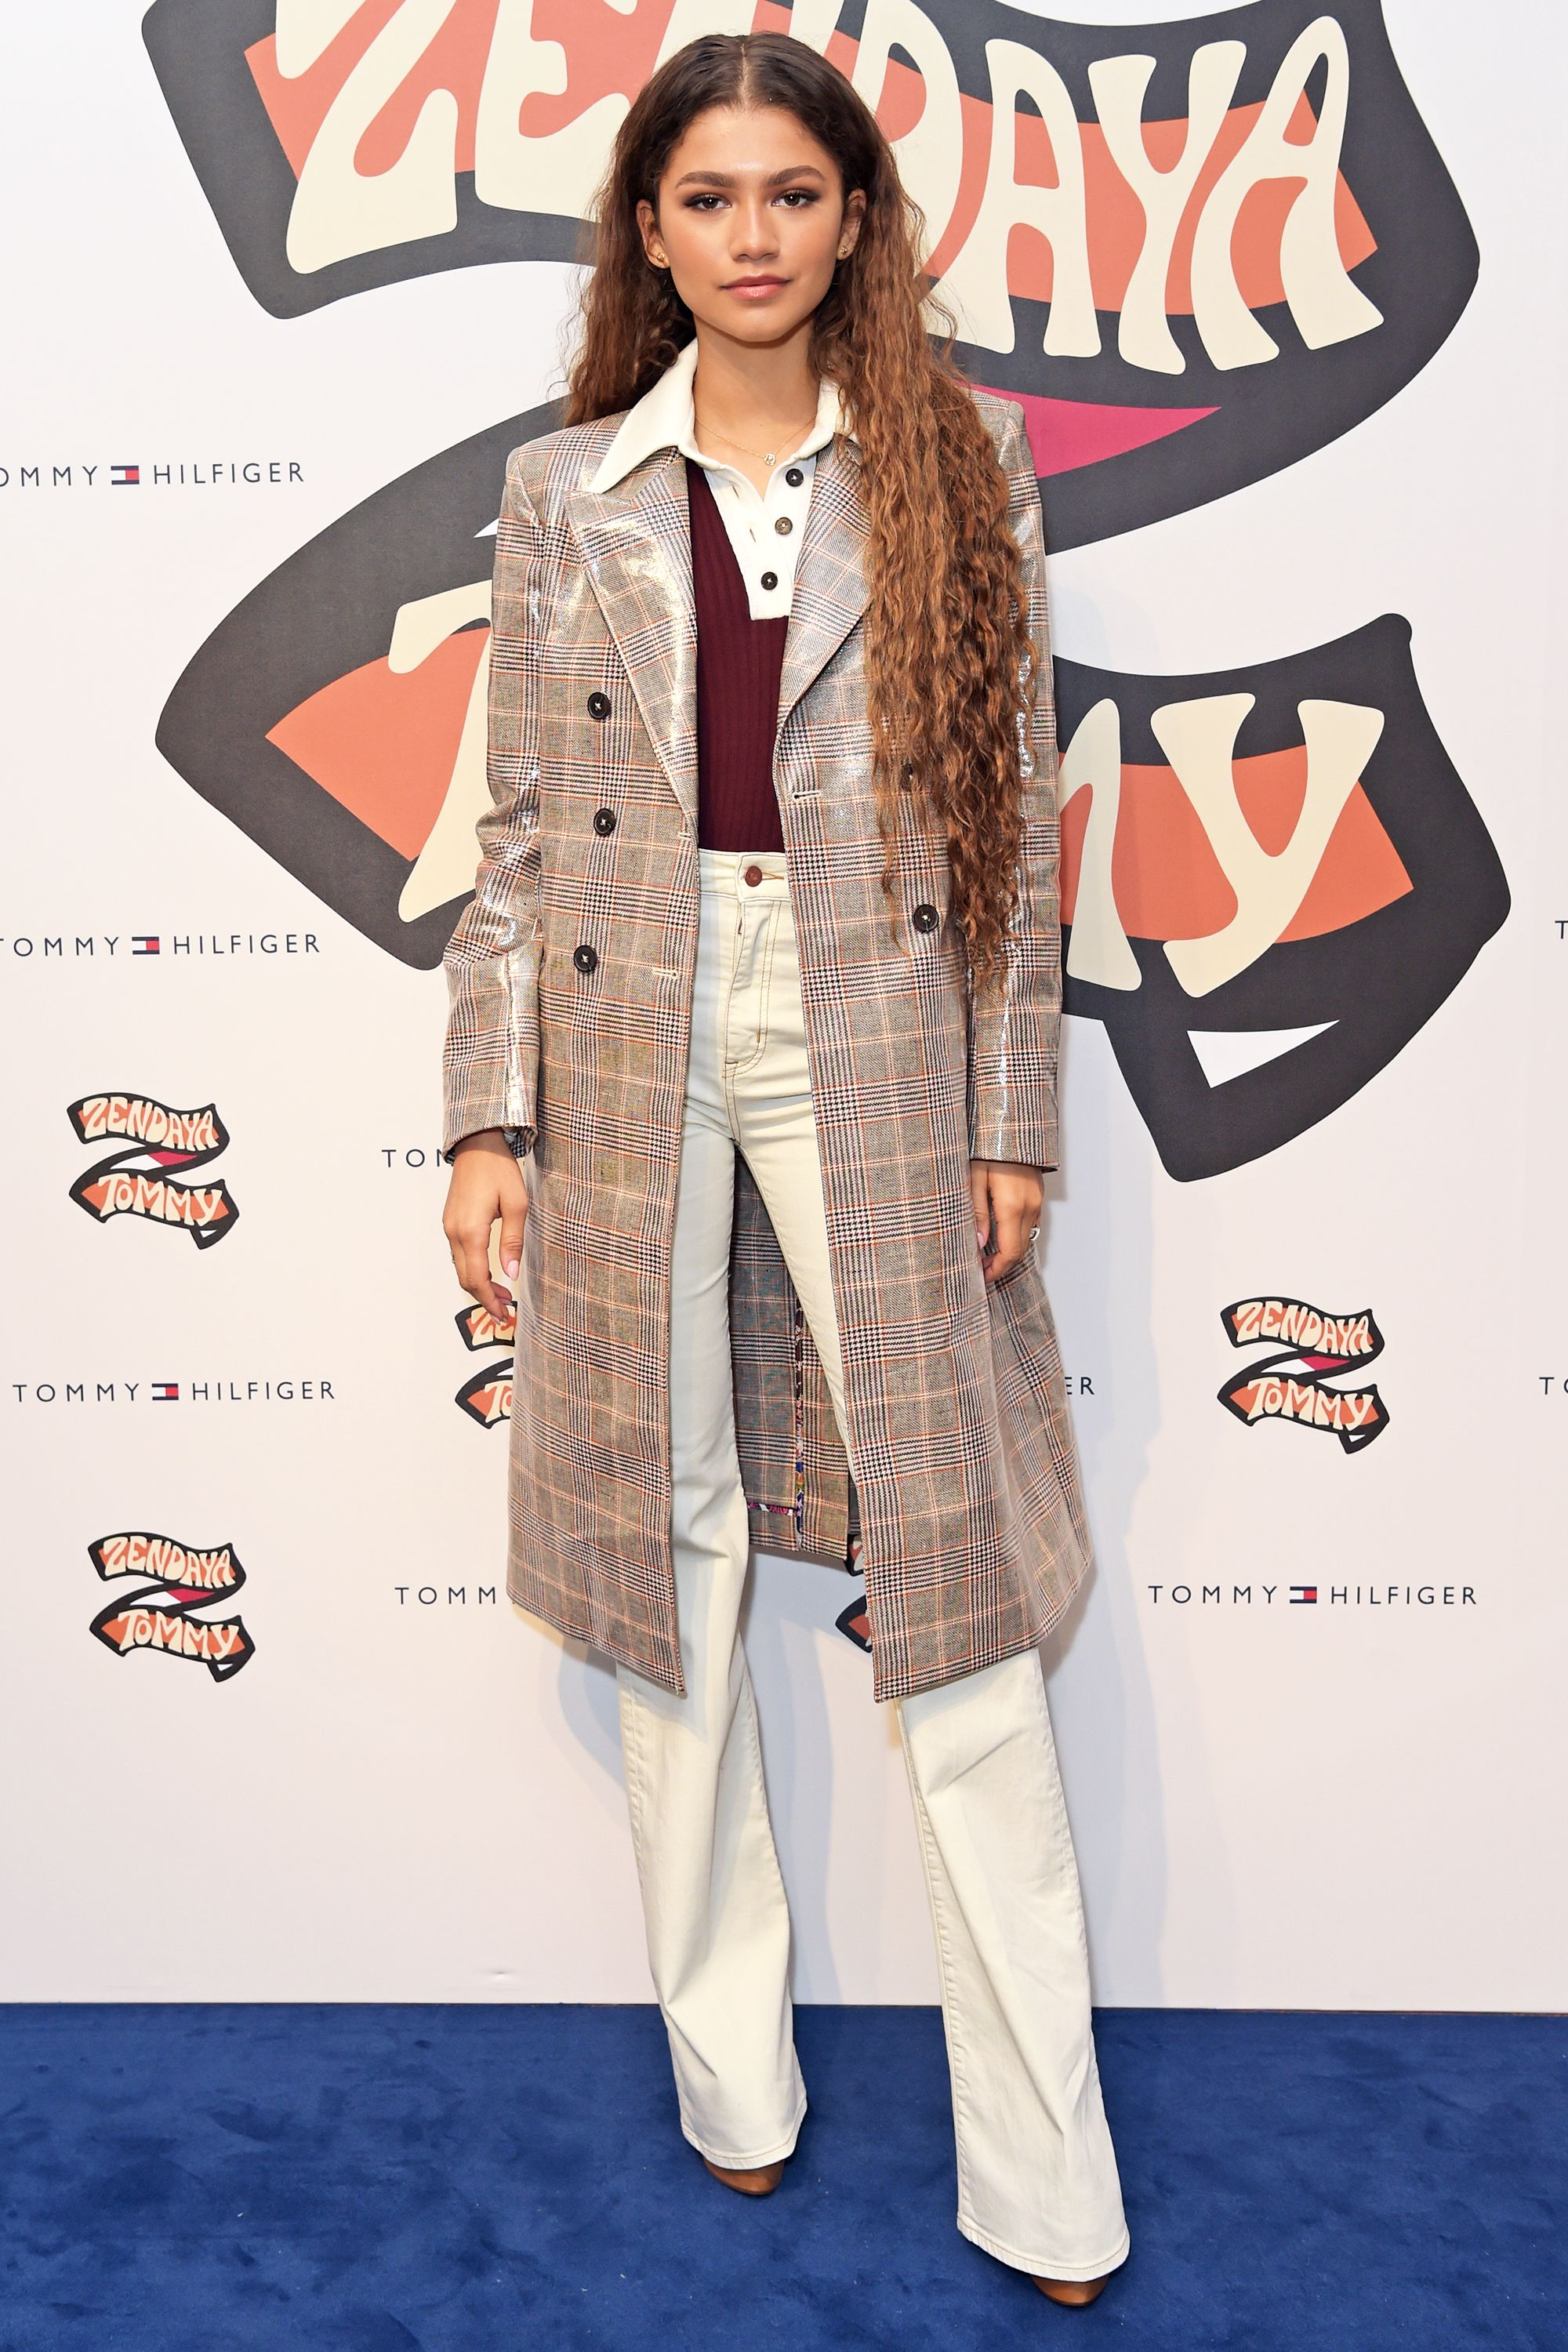 Who: Zendaya When: March 3, 2019 Wearing: TommyXZendaya Why: To say that Zendaya's collab with Tommy Hilfiger was successful would be a huge understatement. The show was a star-studded extravaganza, and the clothes are everything we want to wear.